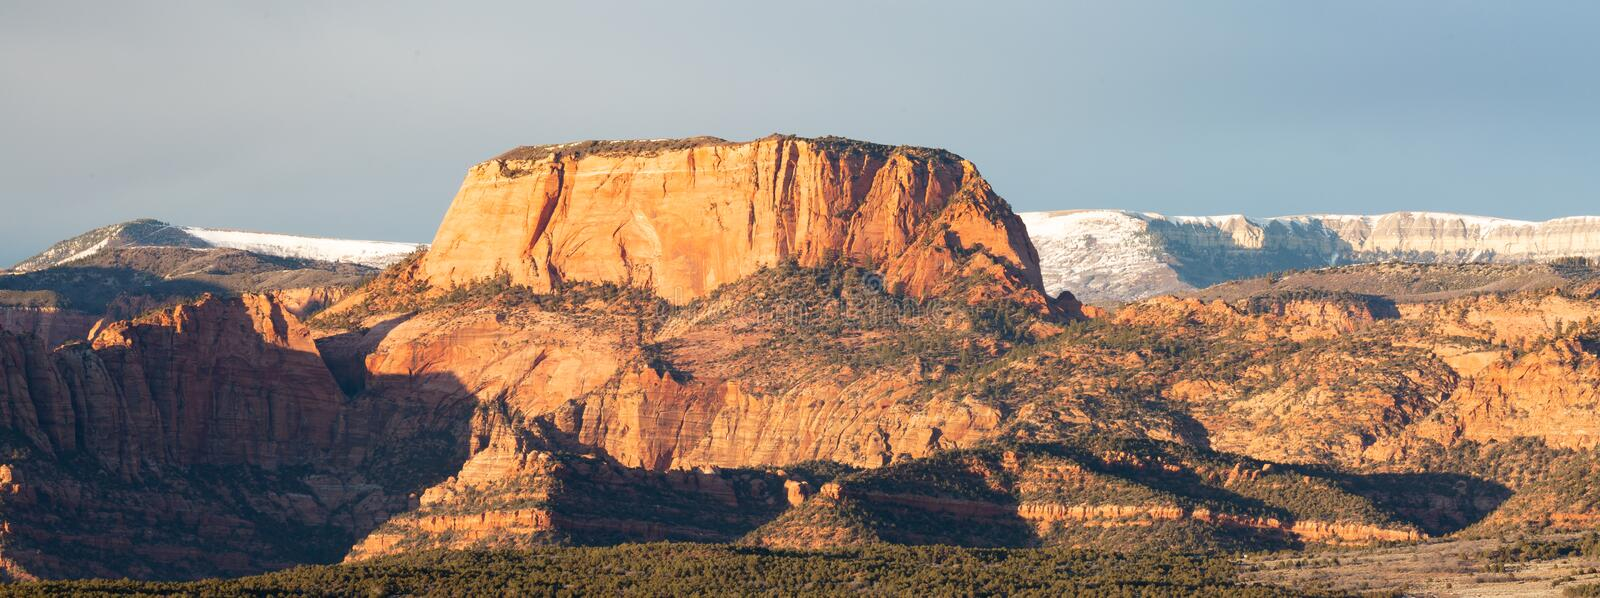 Evening light on Burnt mountain and Kolob fingers with snow on the plateau behind them. Burnt mountain and Kolob fingers glow in the evening light of a winter stock photography